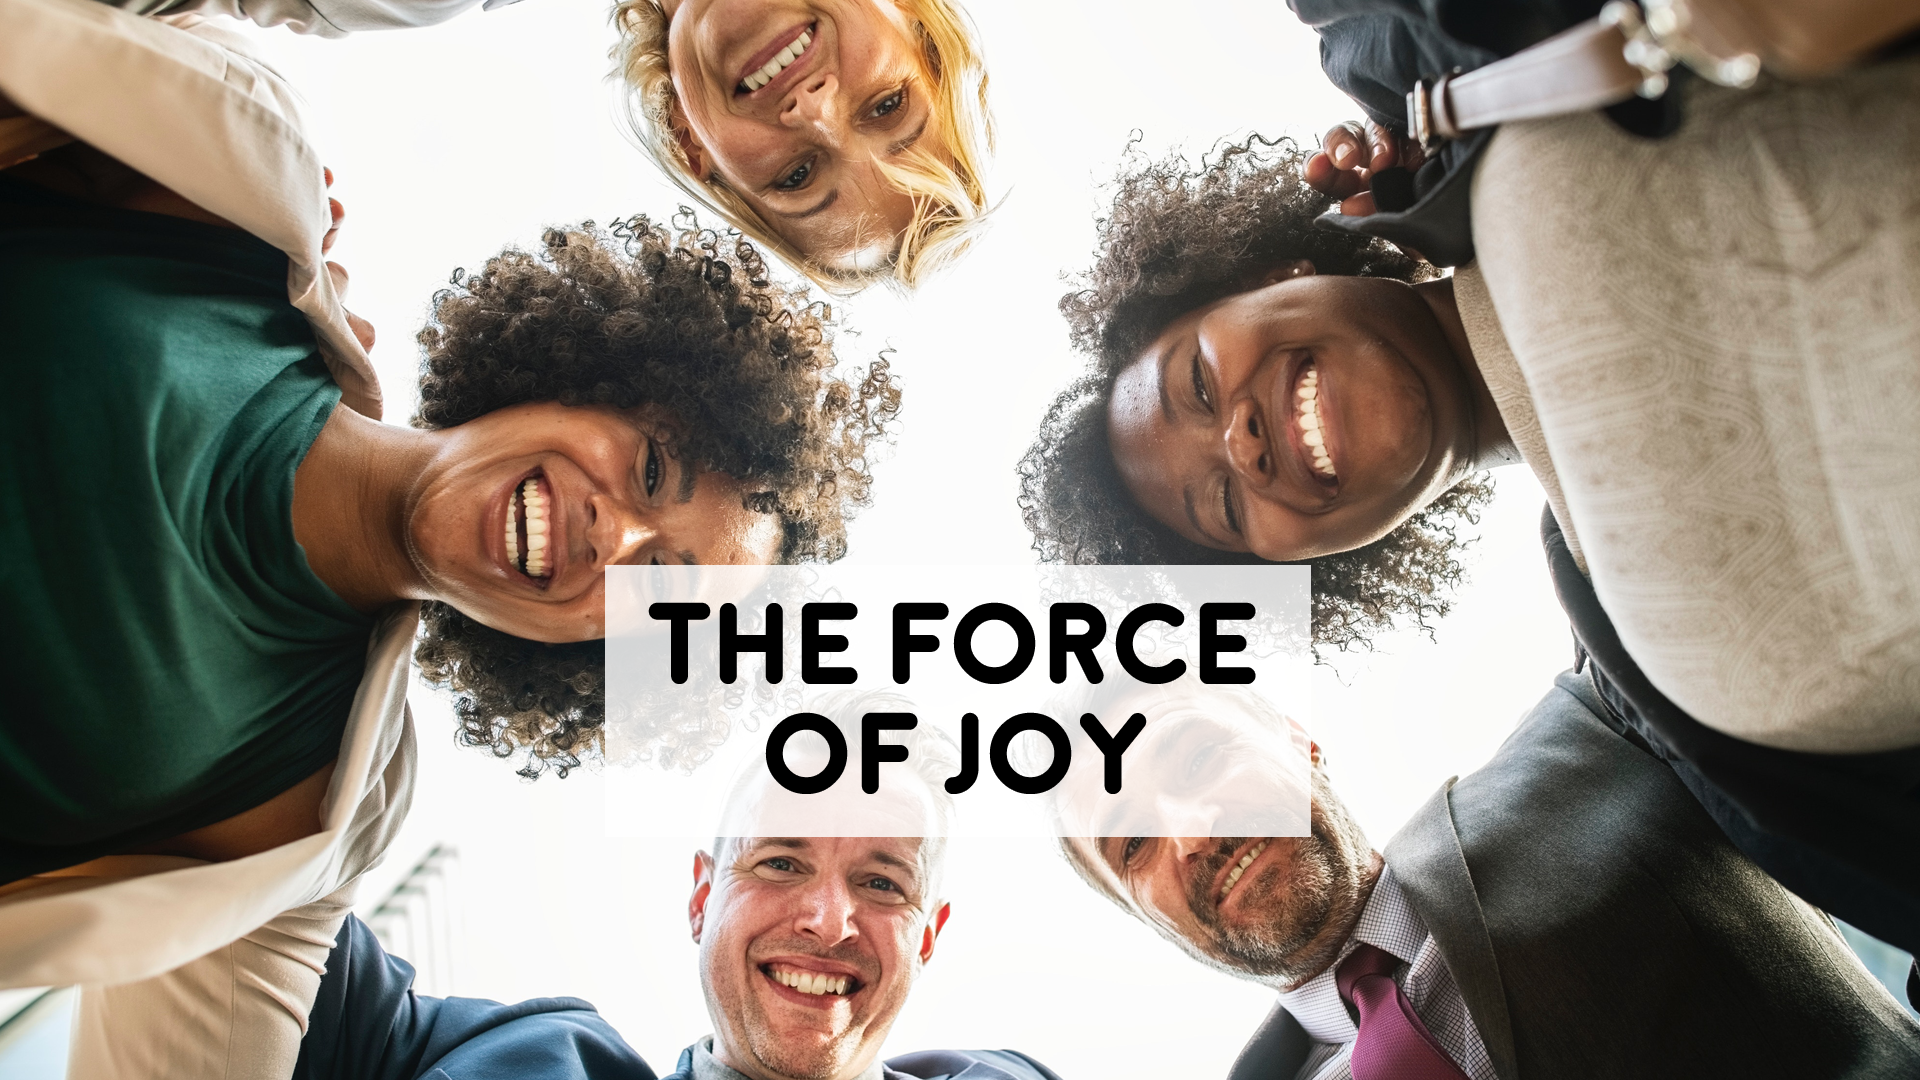 The Force of Joy - 8-19-18